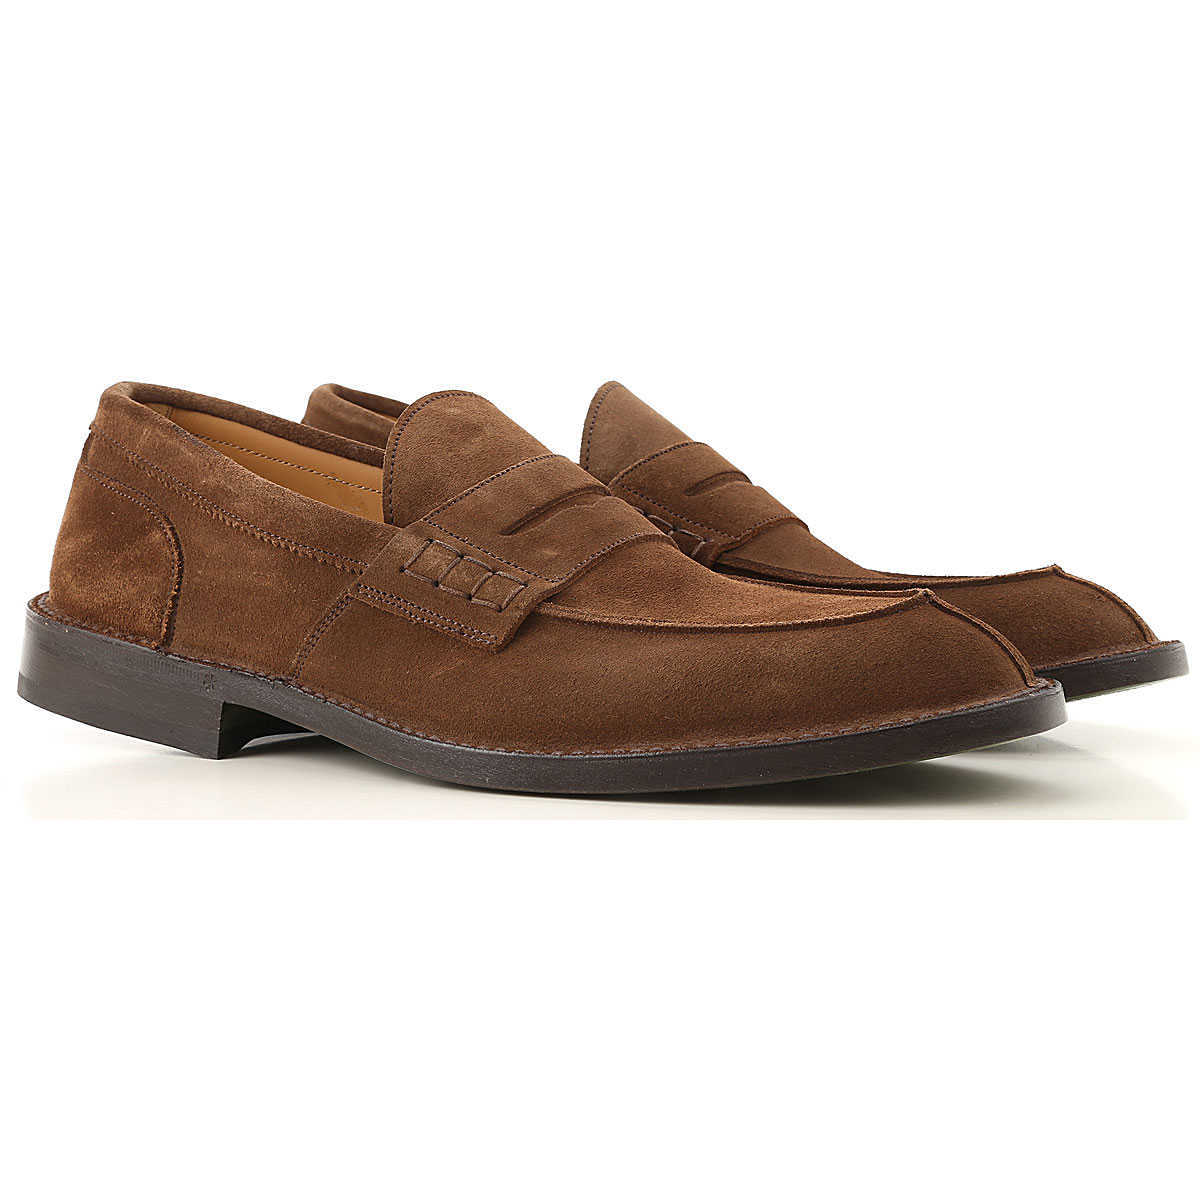 Green George Loafers for Men On Sale Mole - GOOFASH